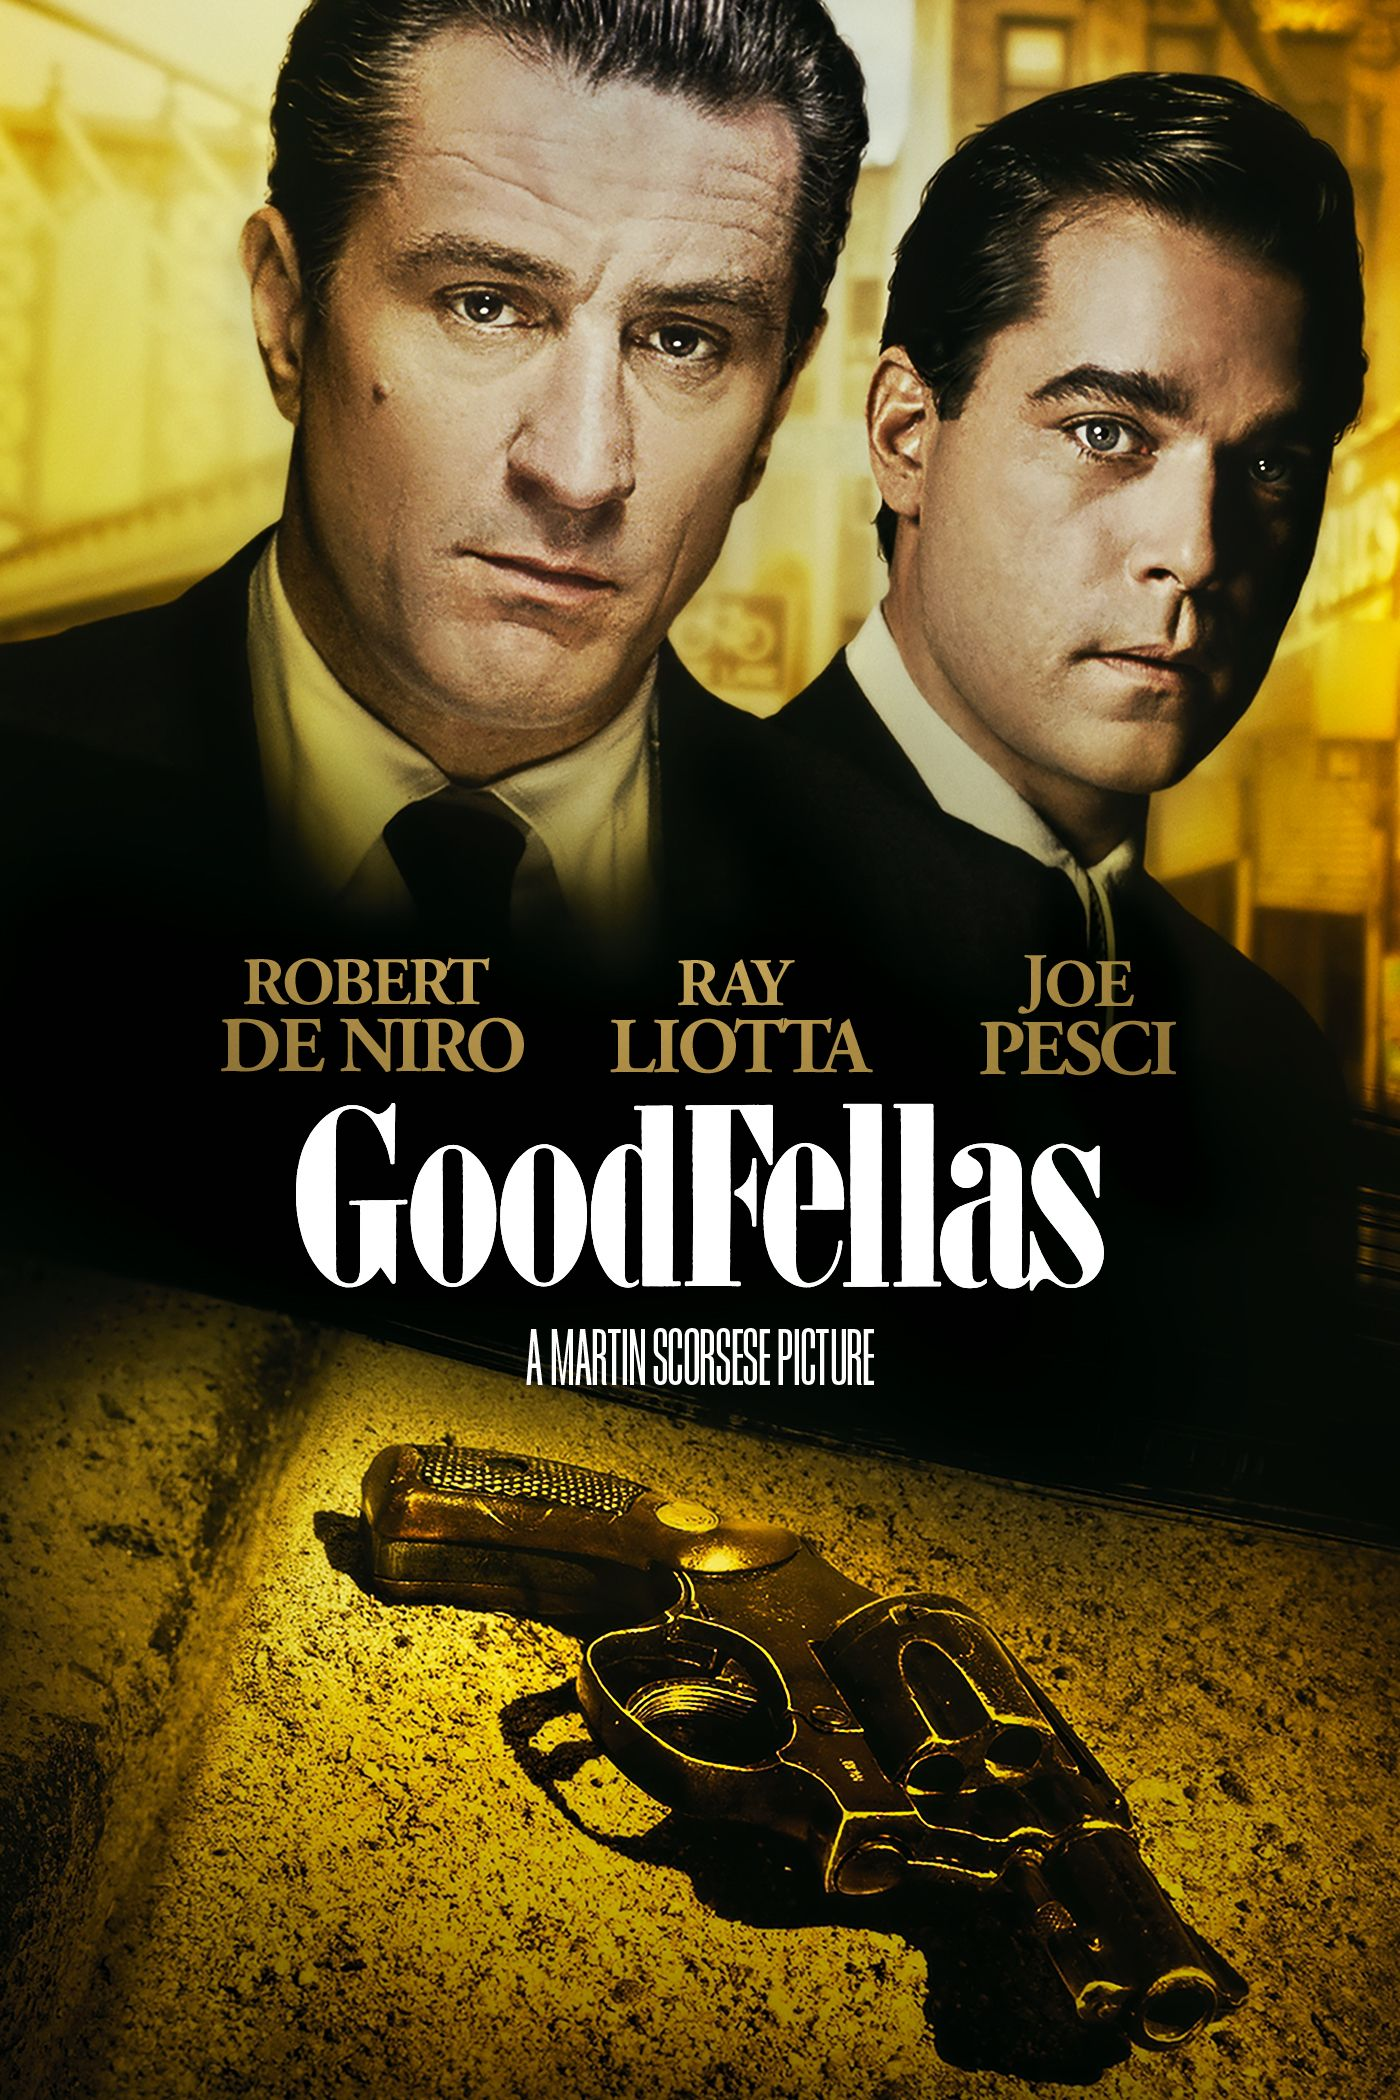 Goodfellas (Remastered Feature) Movie Poster - Robert De ...